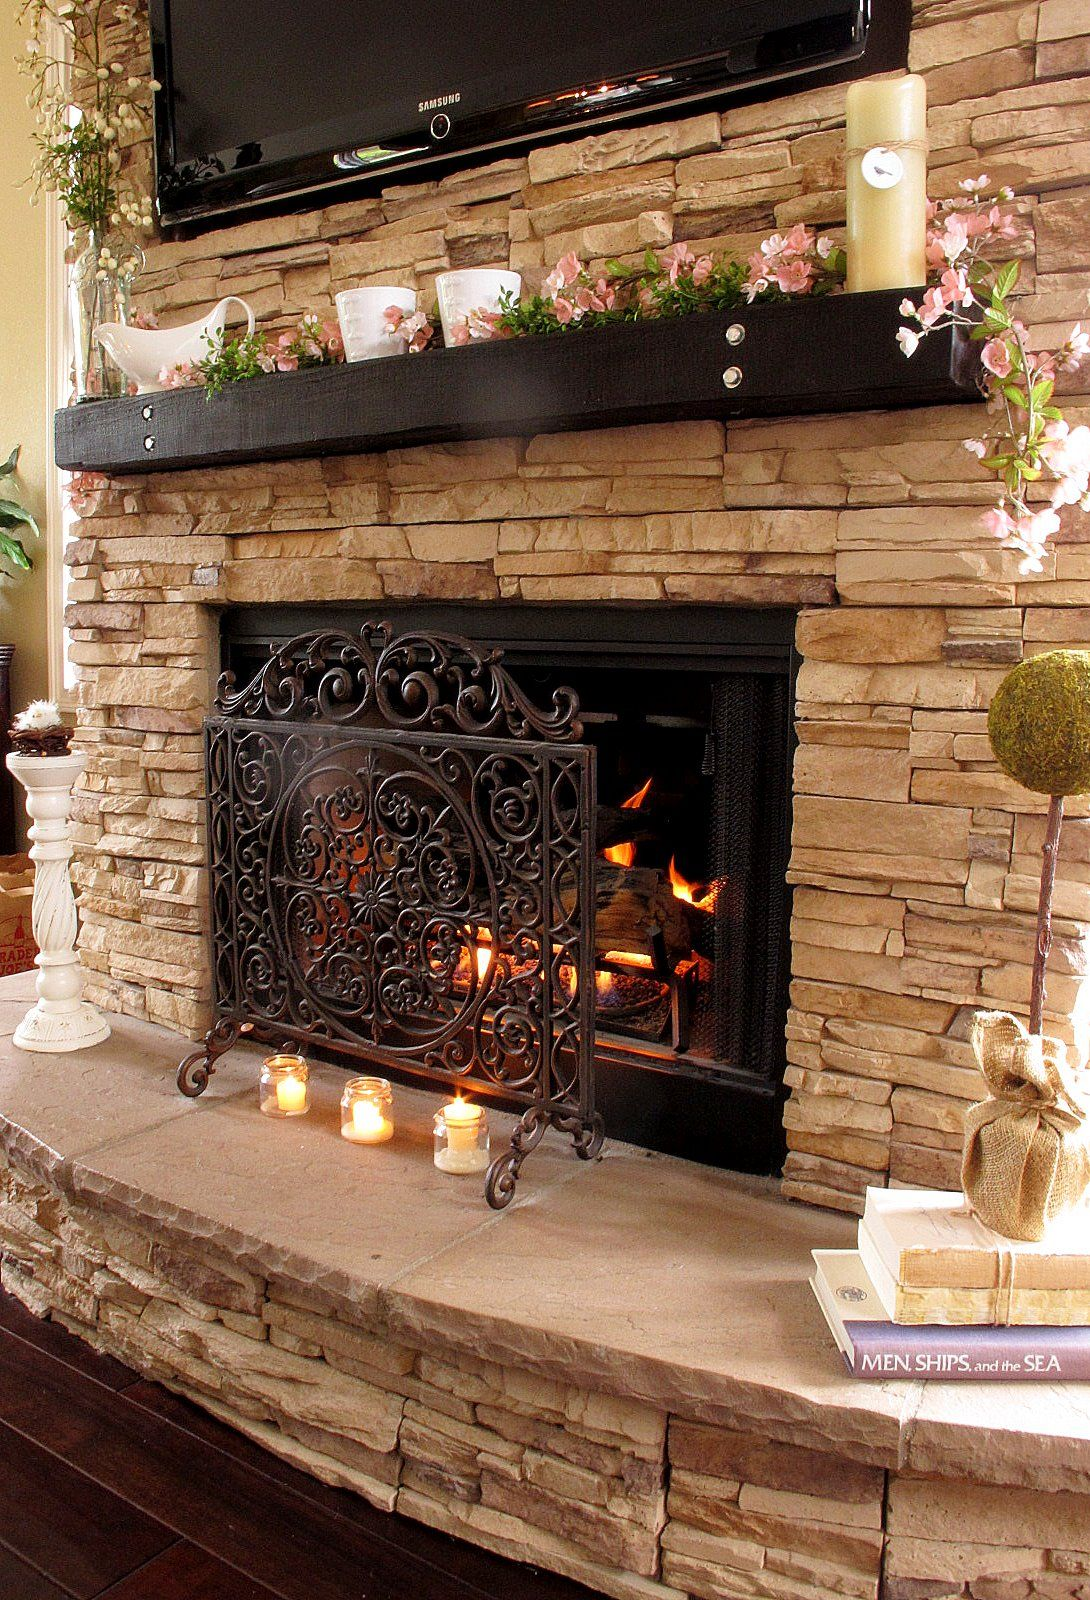 Img 0919 Jpg Jpeg Image 1090x1600 Pixels Scaled 30 Home Fireplace Fireplace Design Stone Veneer Fireplace